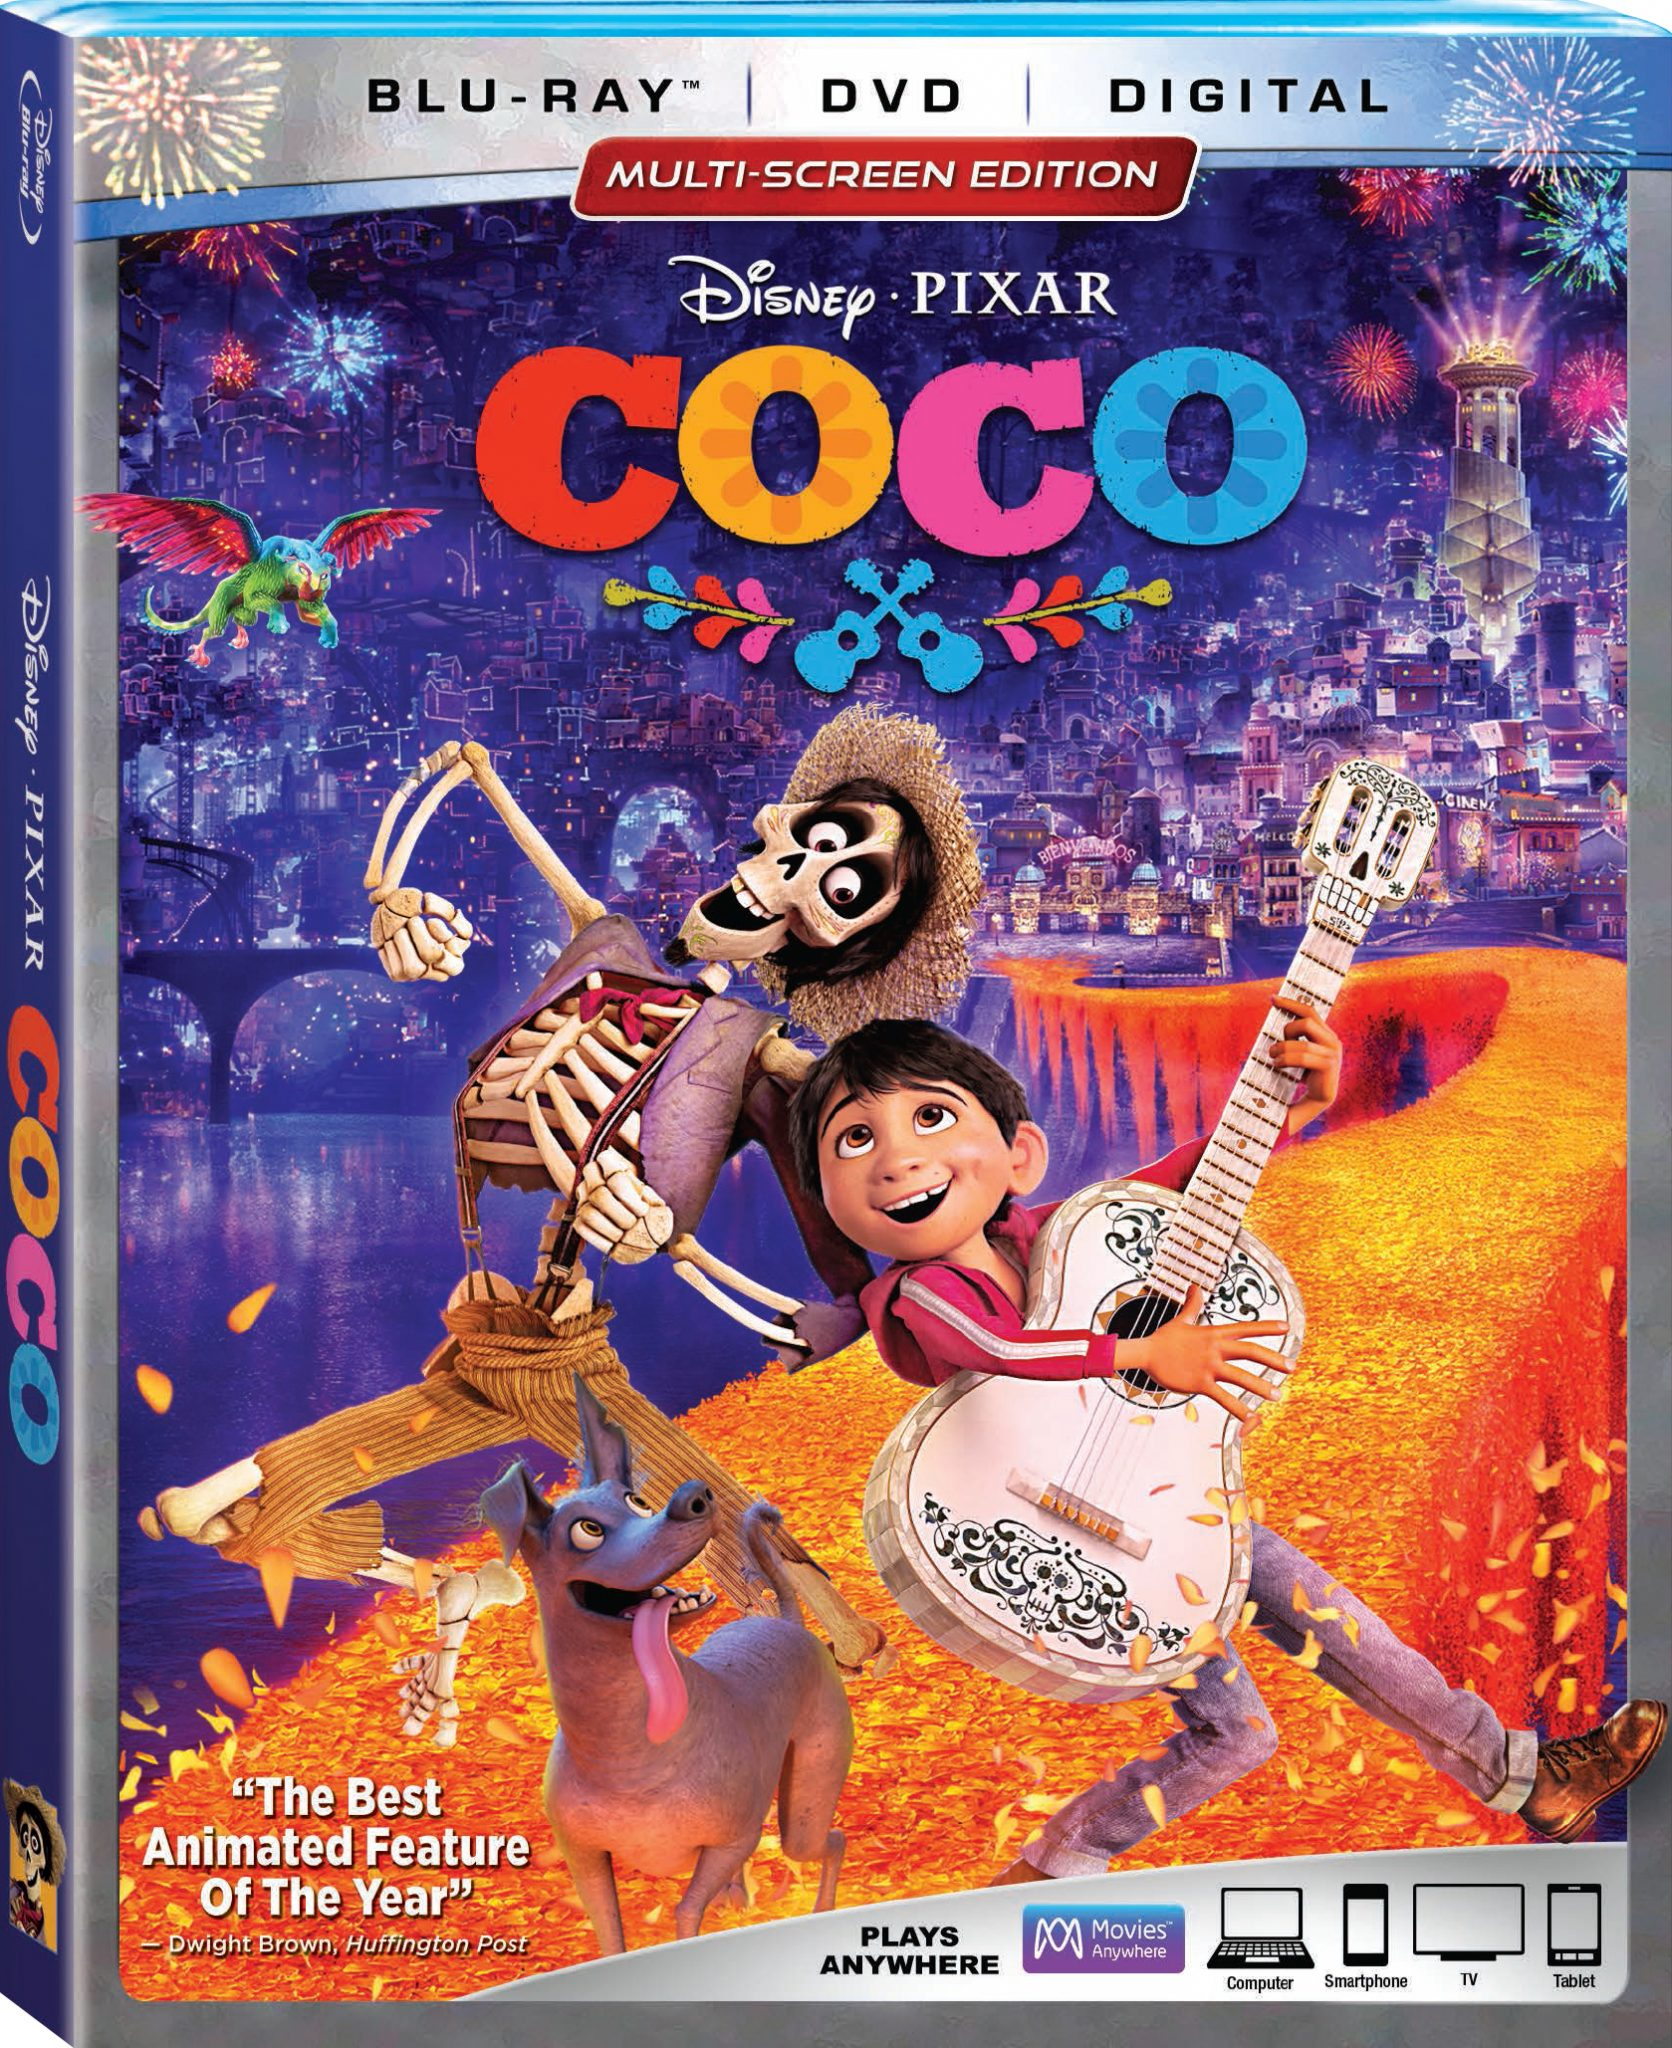 Hey, Hey, Hey! Coco Is Out Now On Blu-Ray!